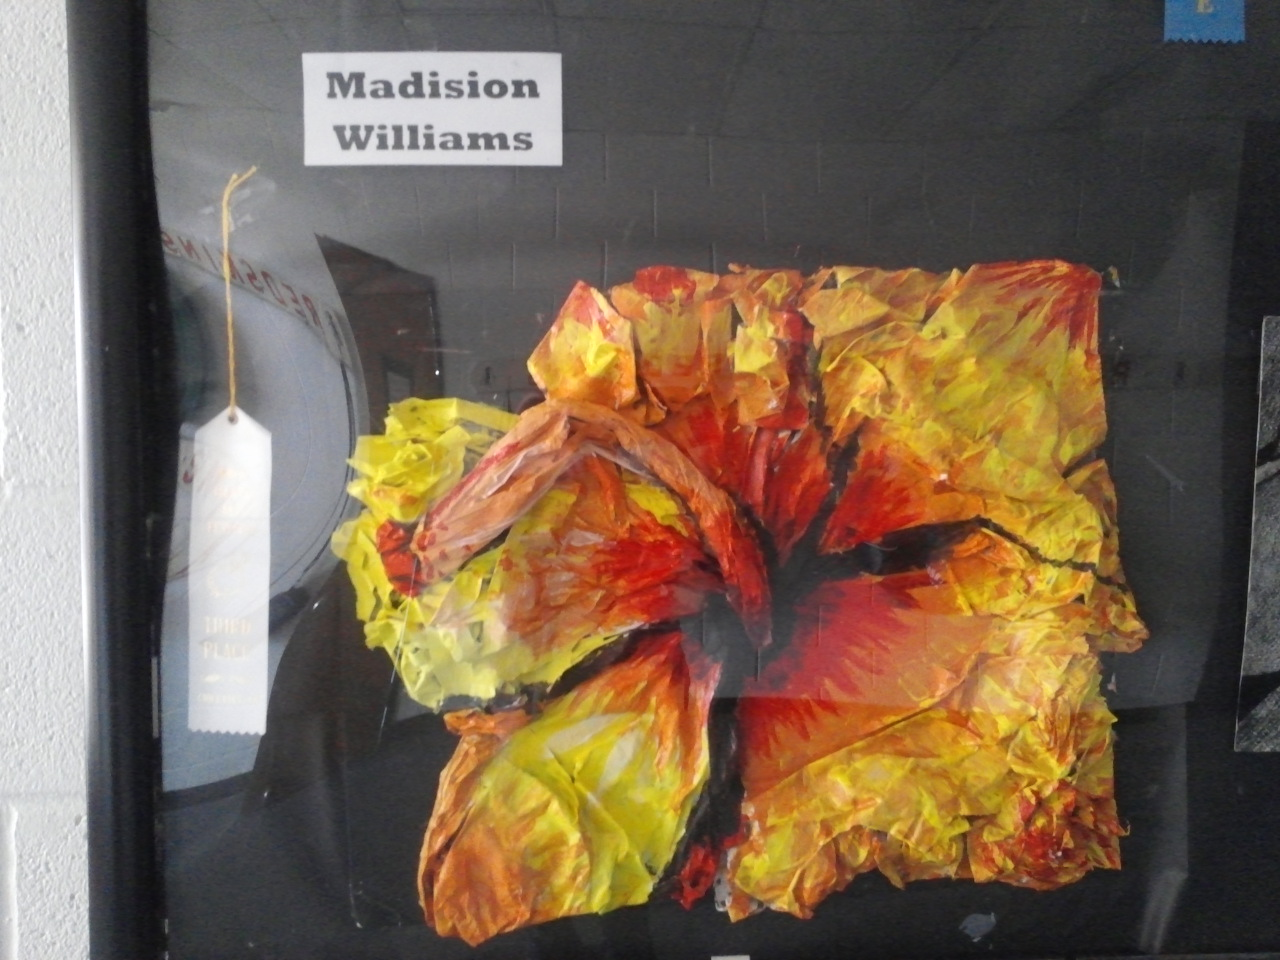 Madision Williams - 3rd place Rock Island Arts Festival